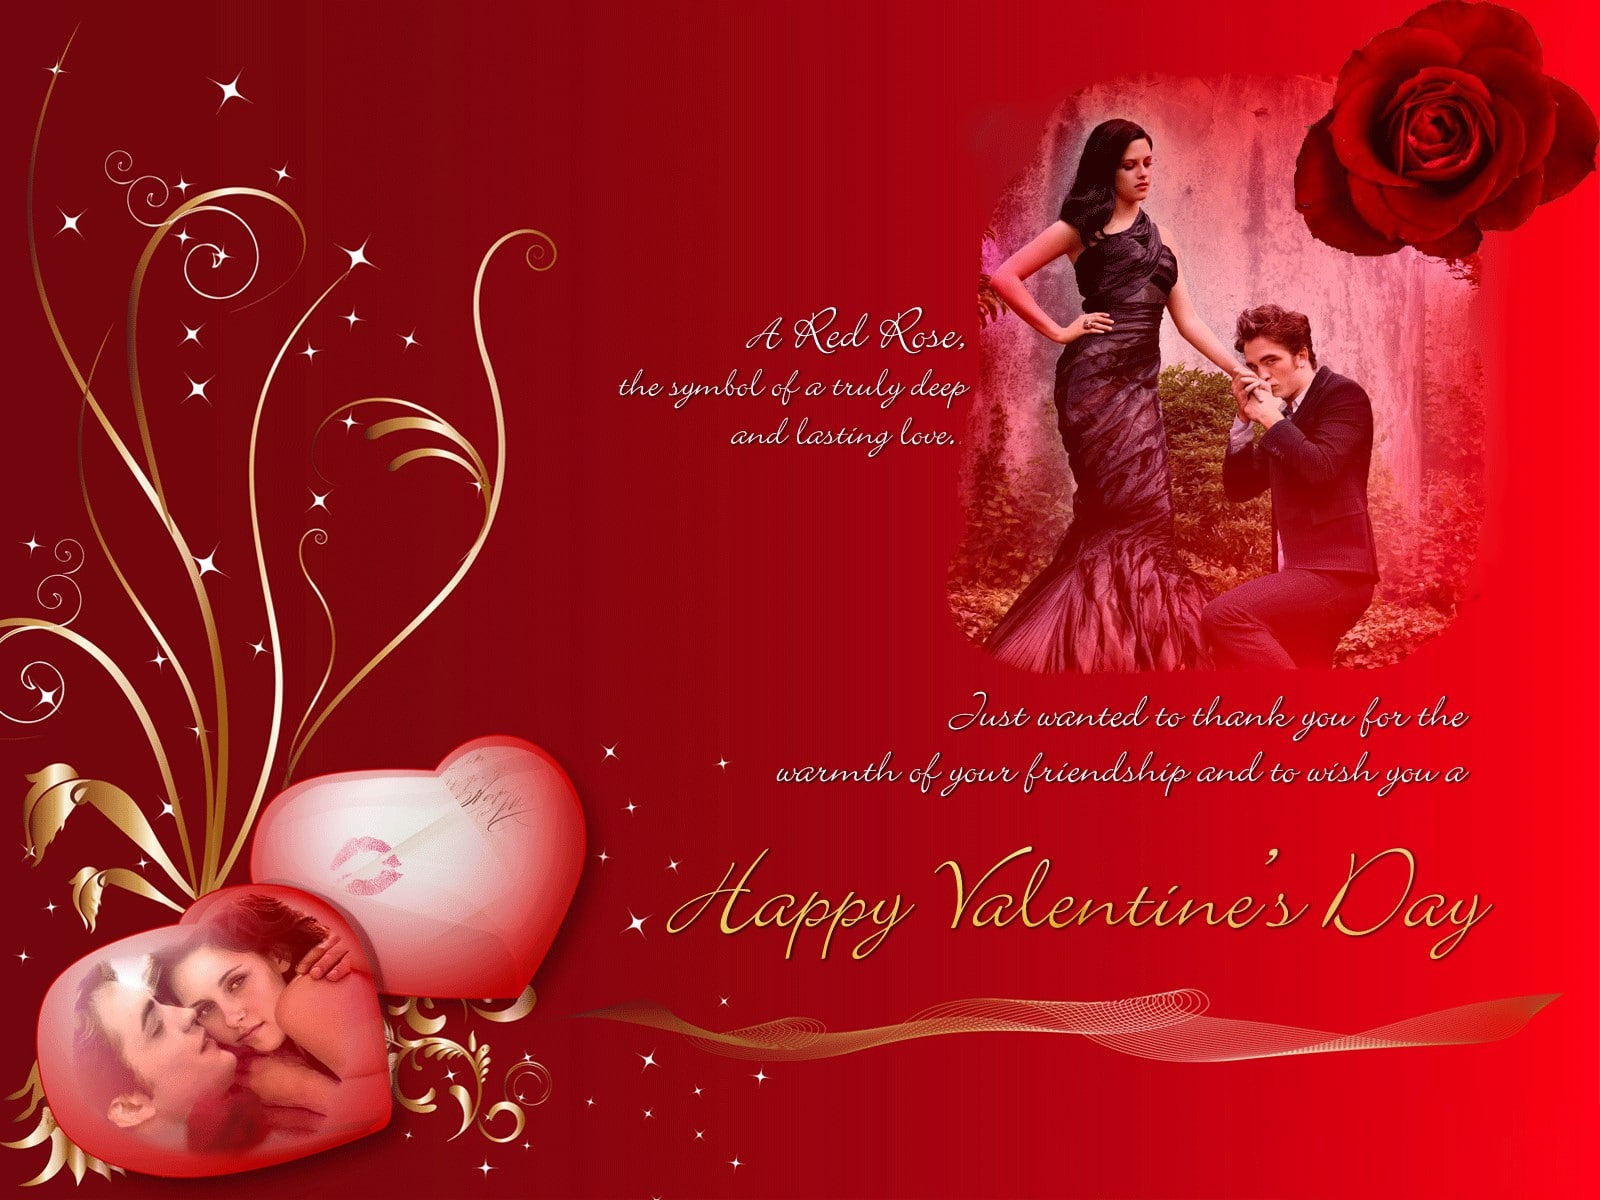 Valentine's Day HD Images and cute wallpaper